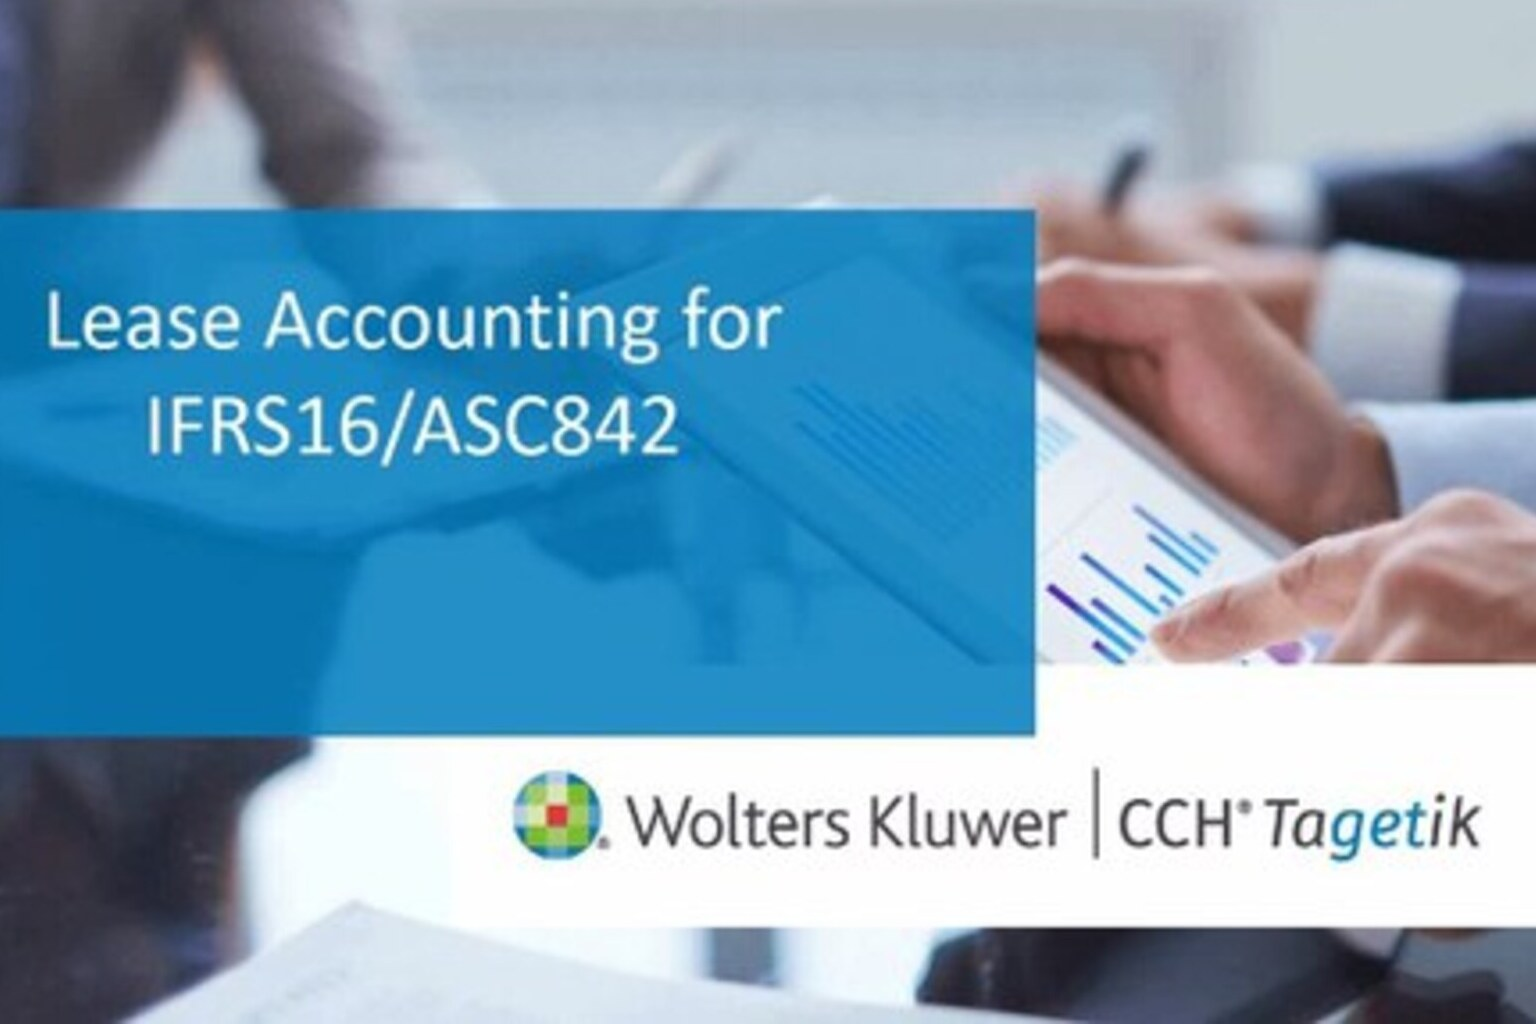 2-min-demo-ifrs16-asc842-lease-accounting-thumbnail